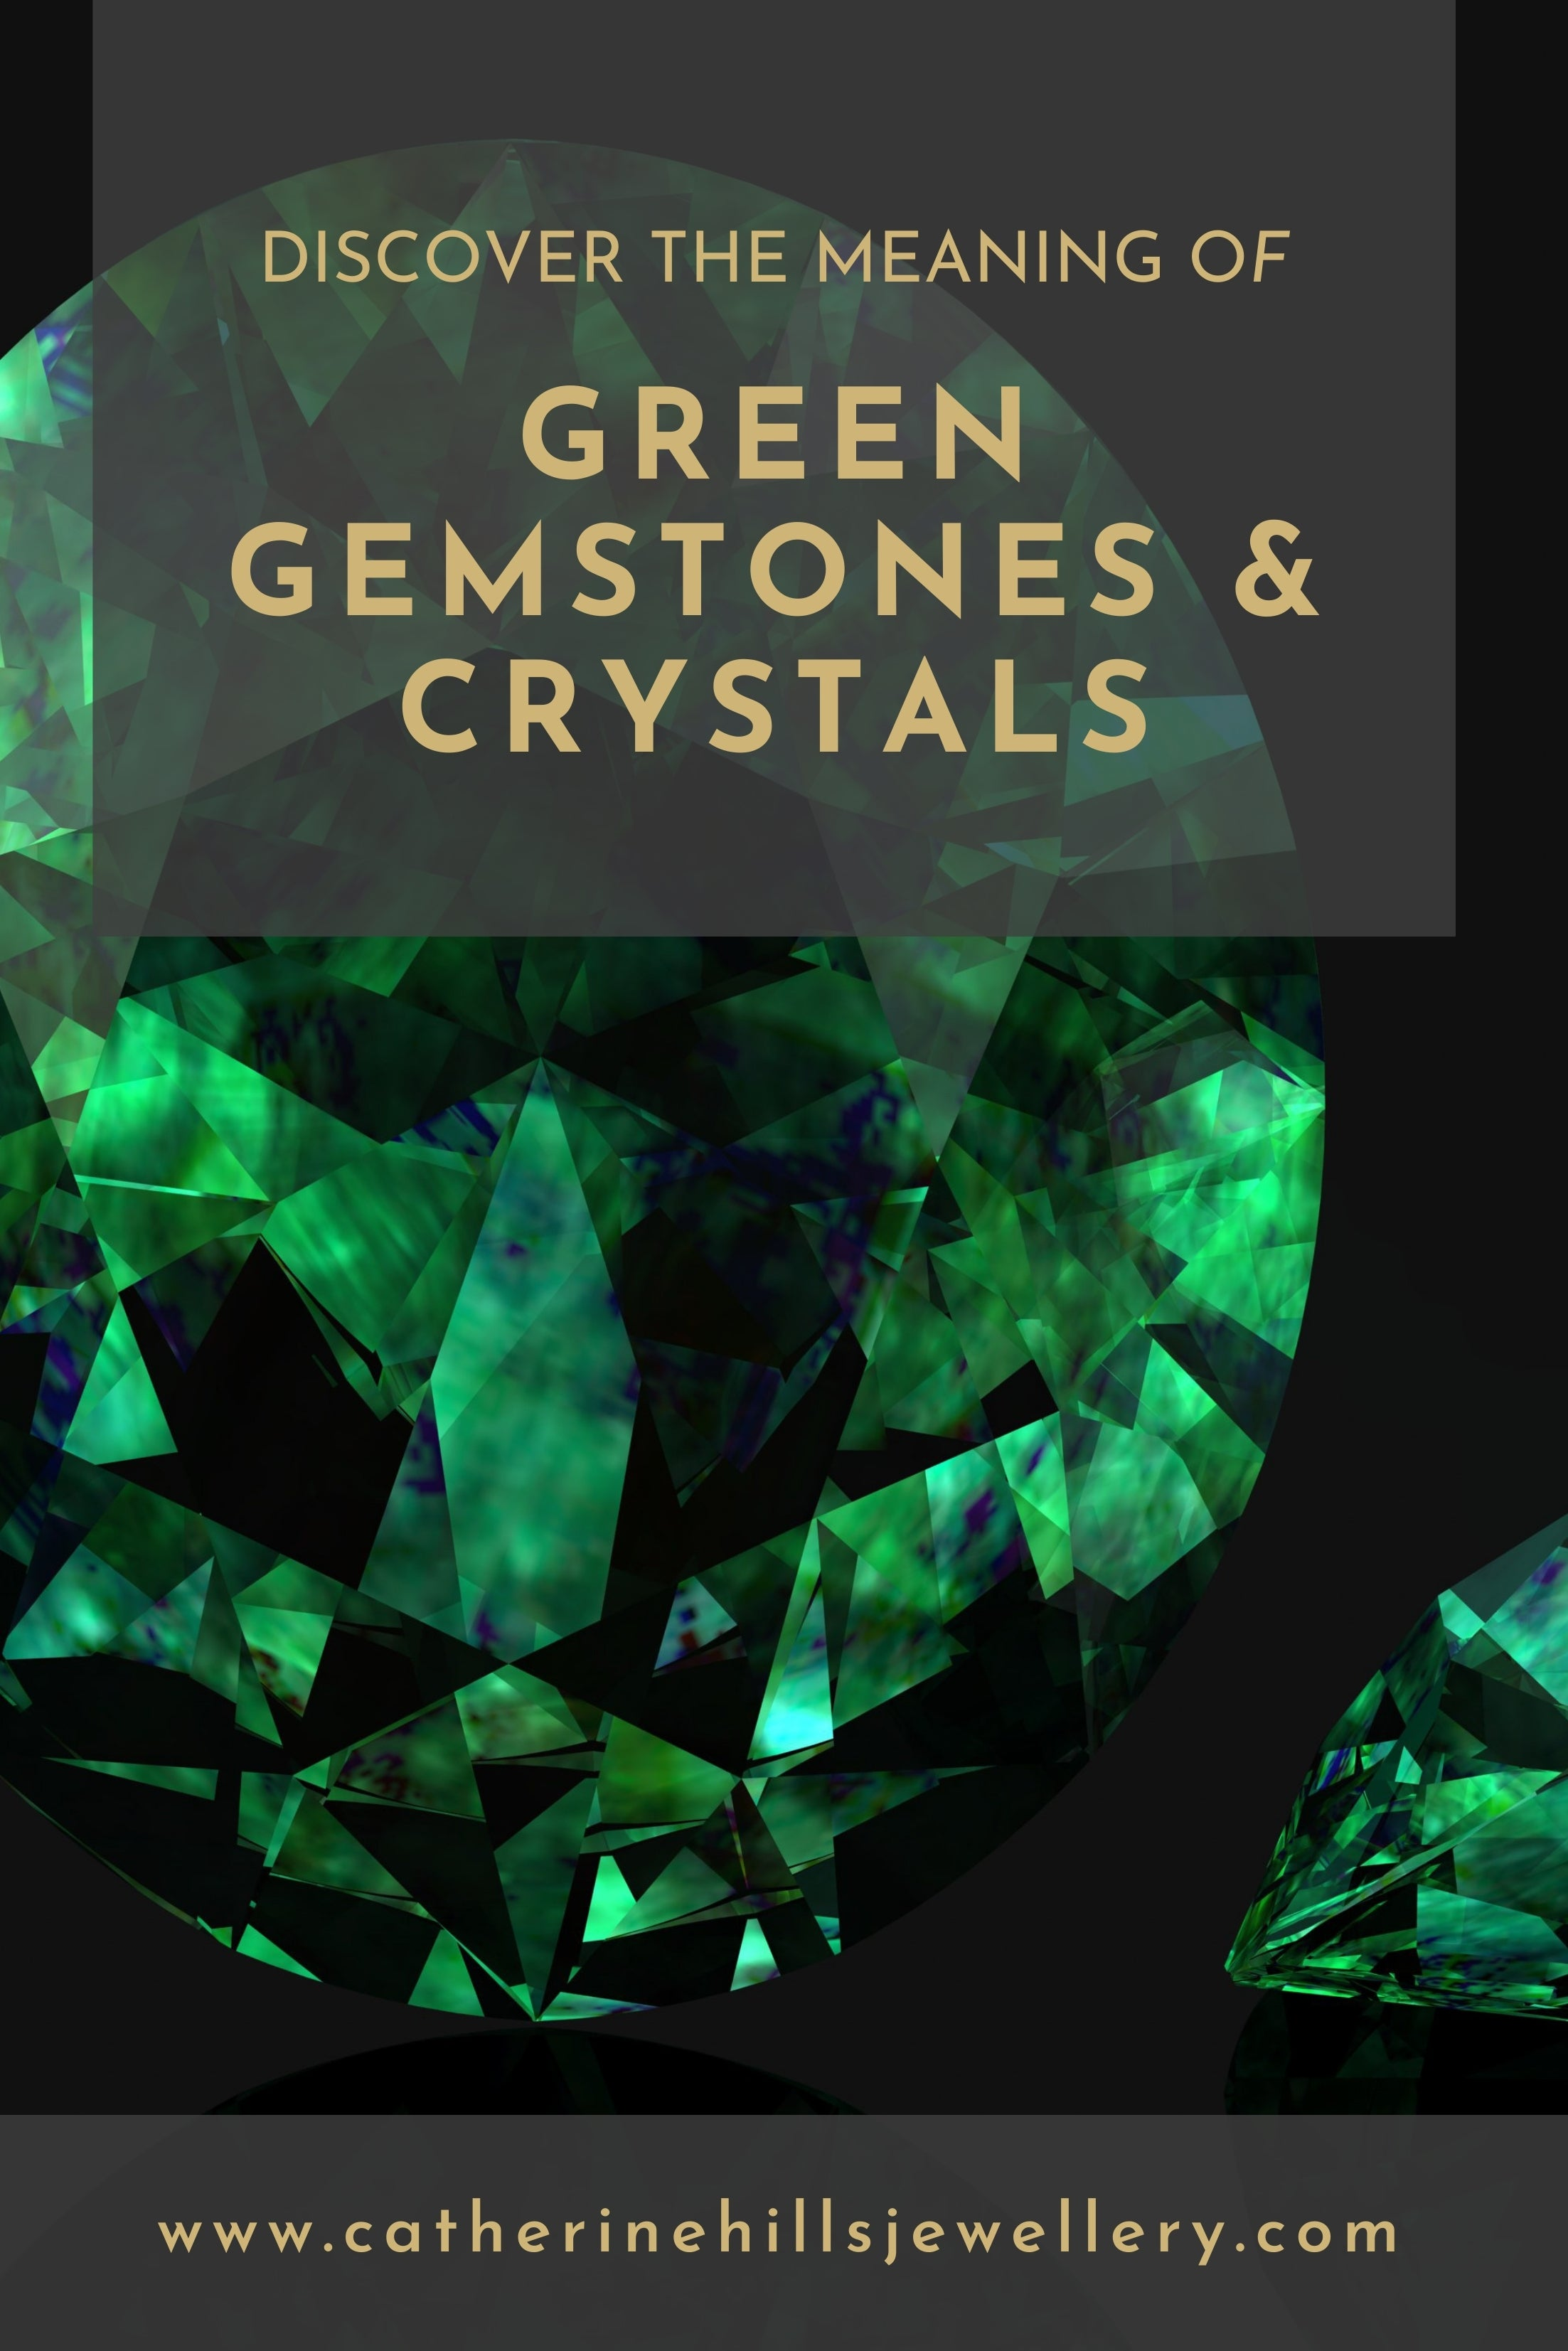 Discover the meaning of green gemstones and crystals